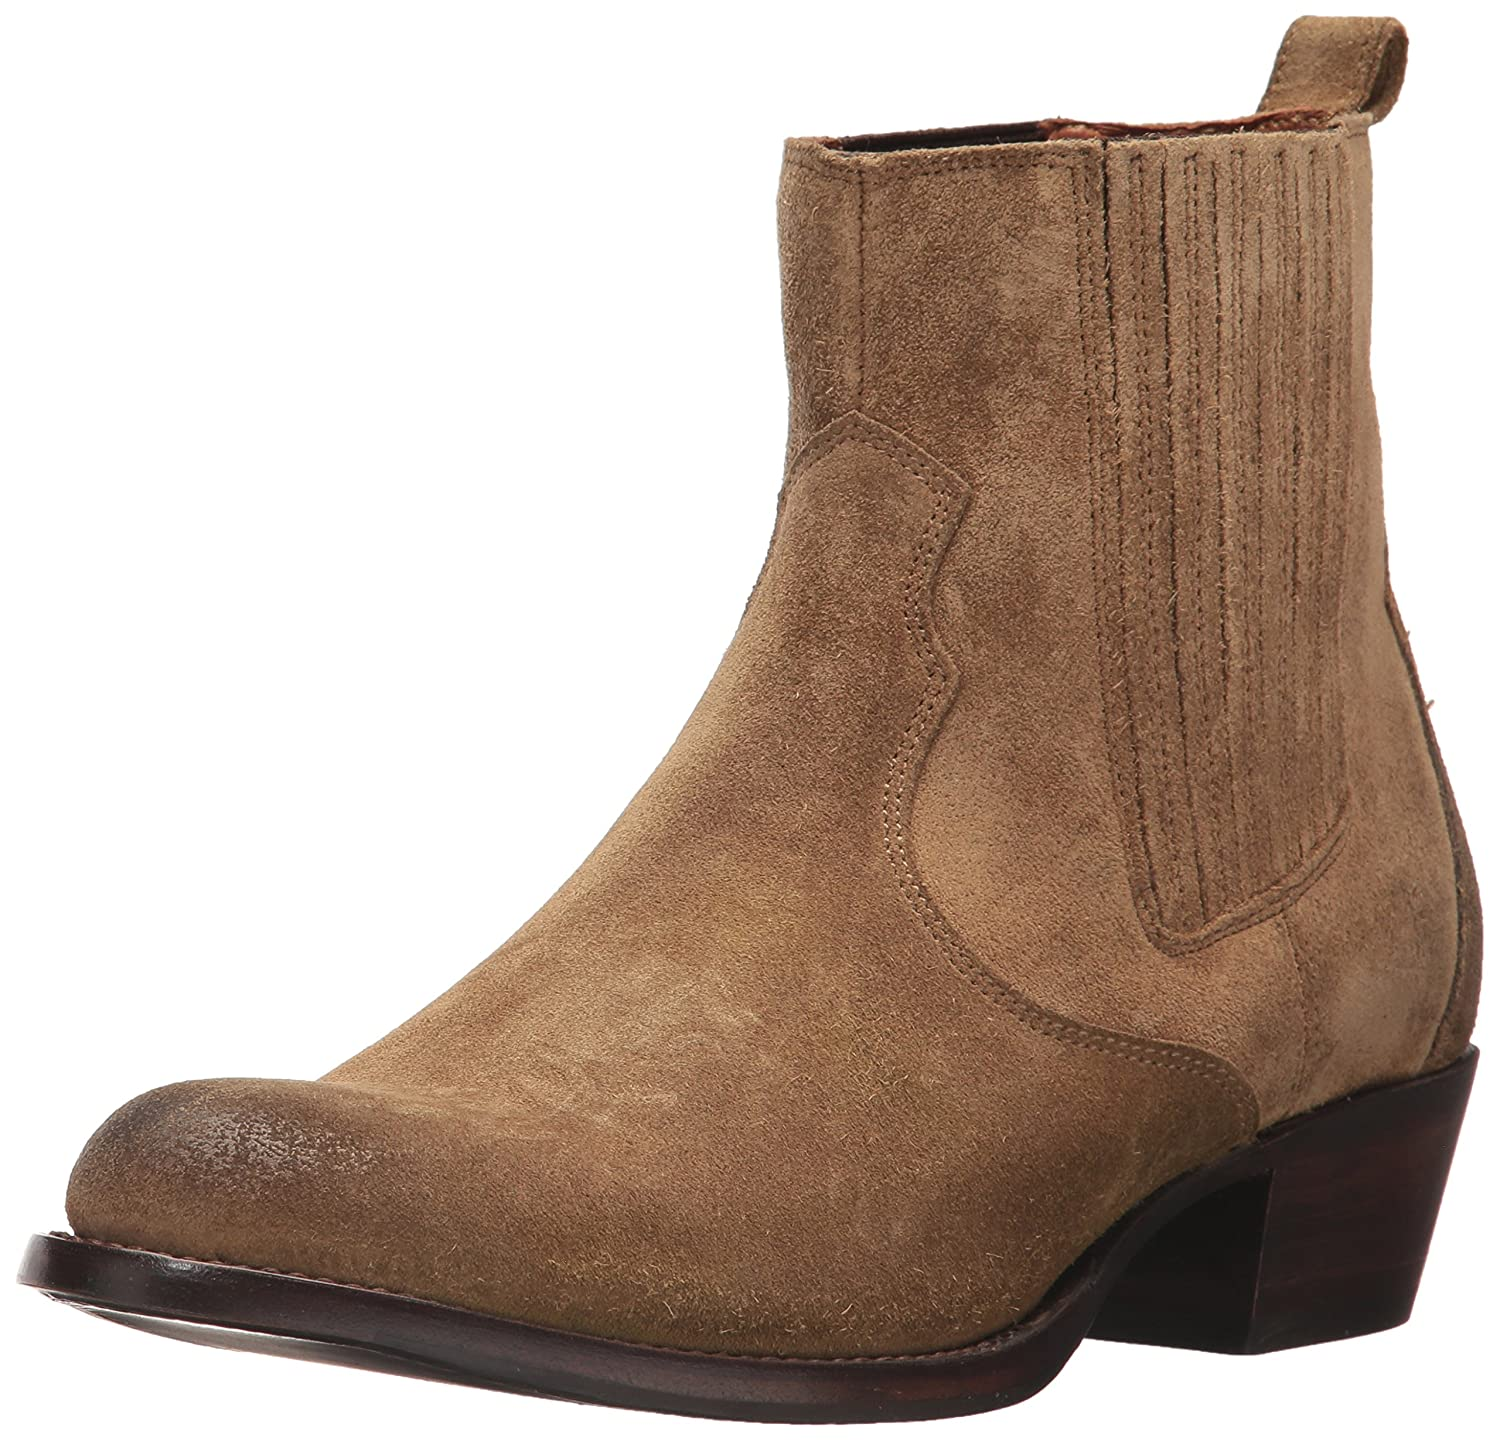 FRYE Women's Diana Chelsea Boot B01N9SYY7O 7.5 B(M) US|Tan Full Grain Brush Off